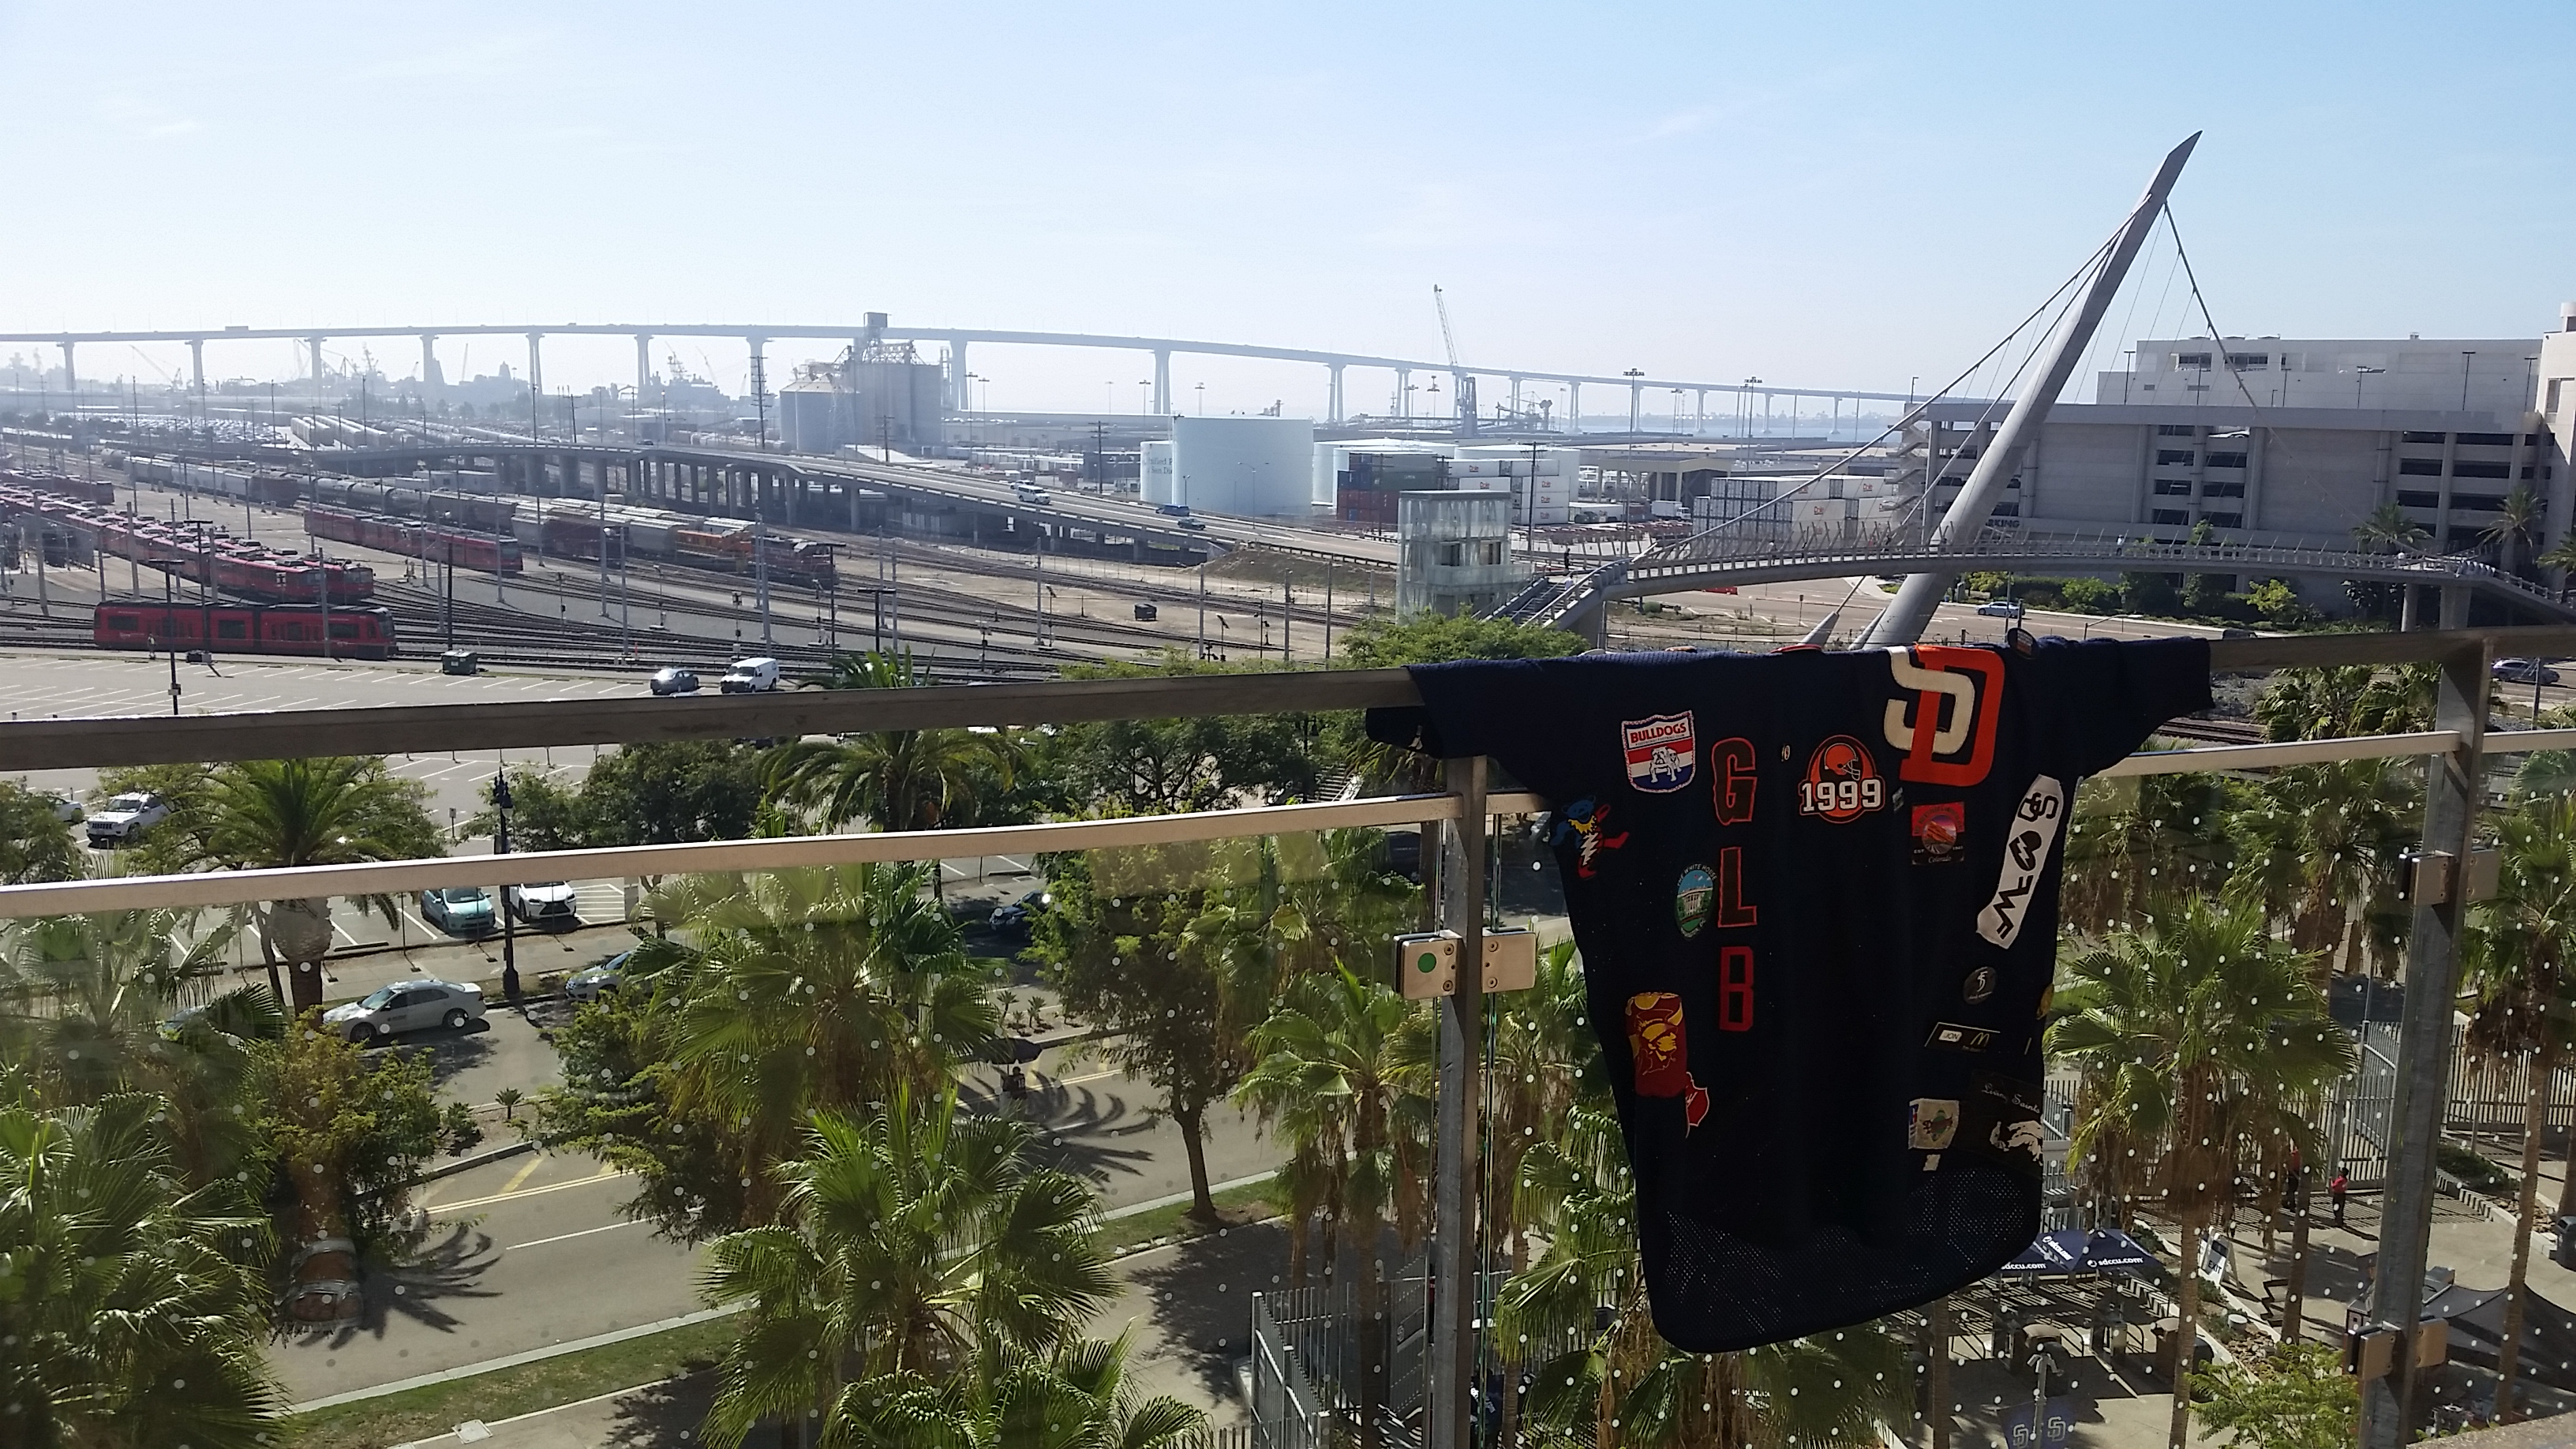 The jersey soaks in the view from Club 19 at Petco Park during SD Social Summit.